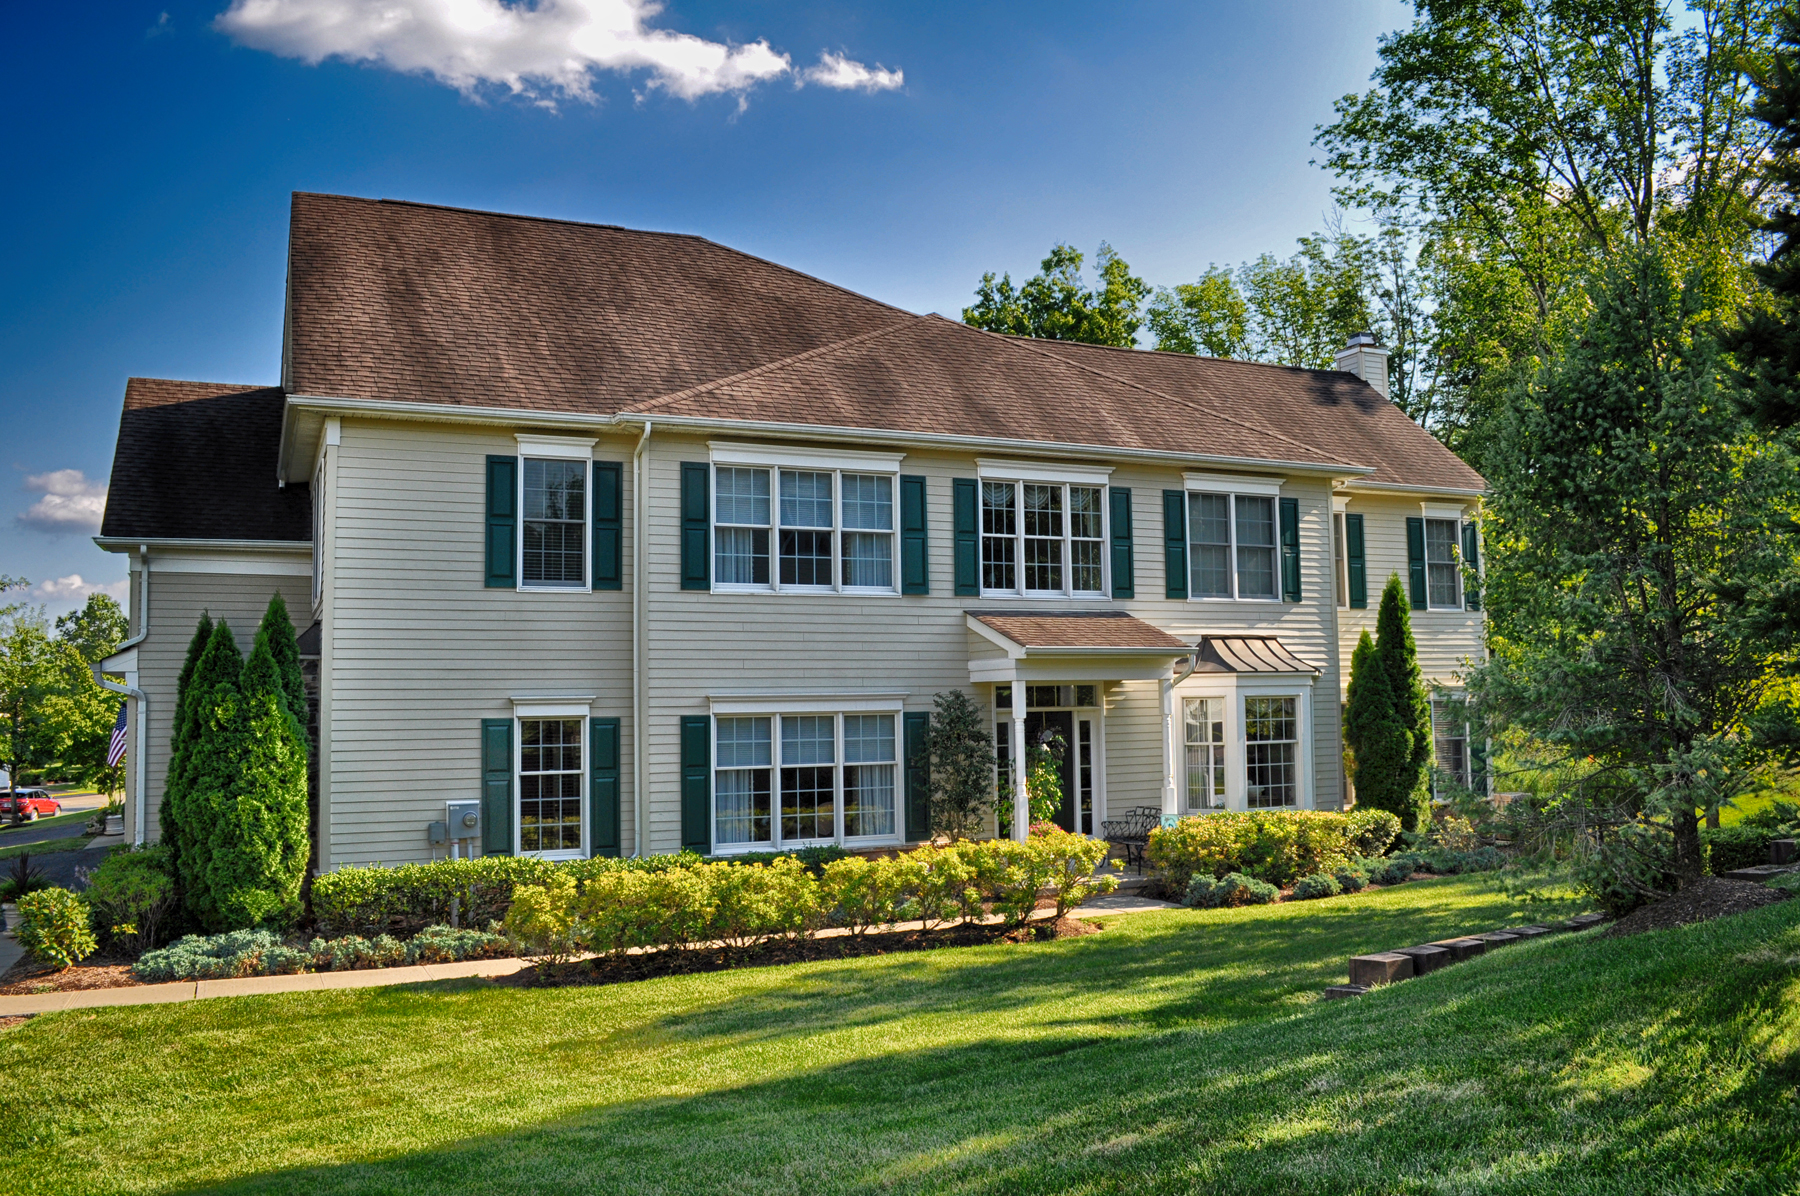 Townhouse for Sale at Elegant Carriage Style Townhome 1504 Farley Road Tewksbury Township, New Jersey 08889 United States